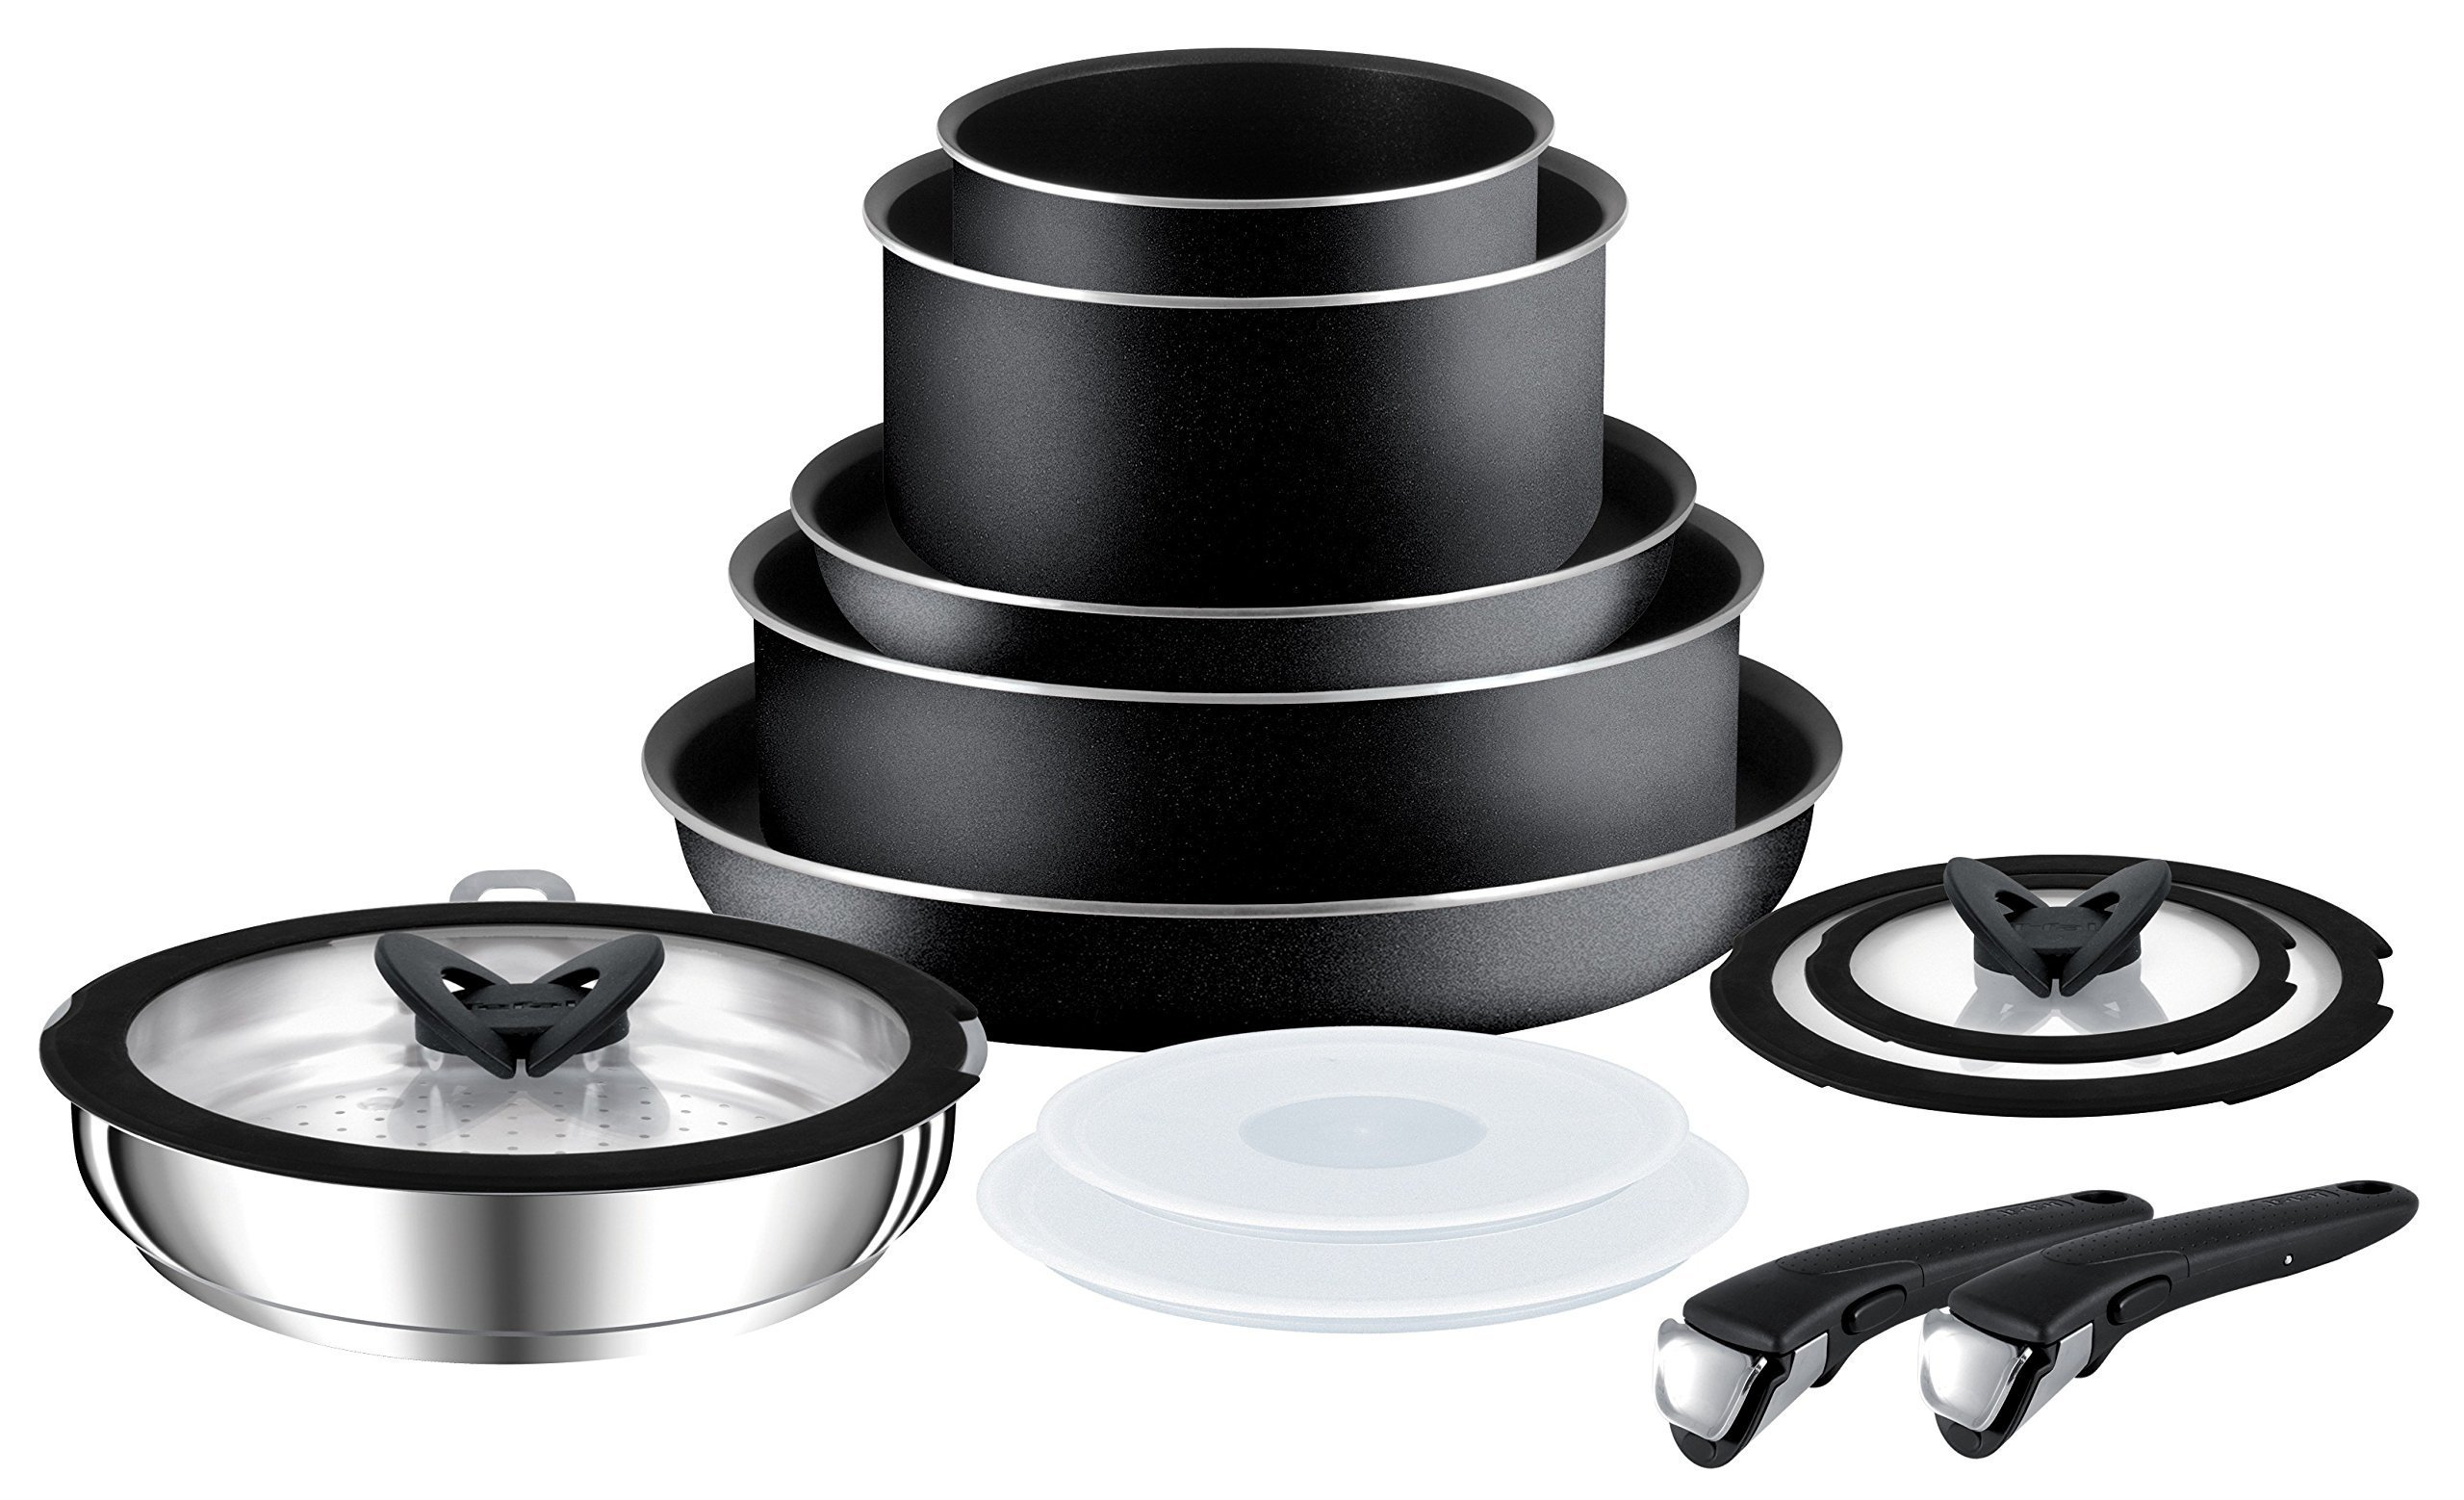 Tefal (T-Fal) 280975 Ingenio Essential Non Stick Cookware Set with Pan Set, 13 Pieces - Black